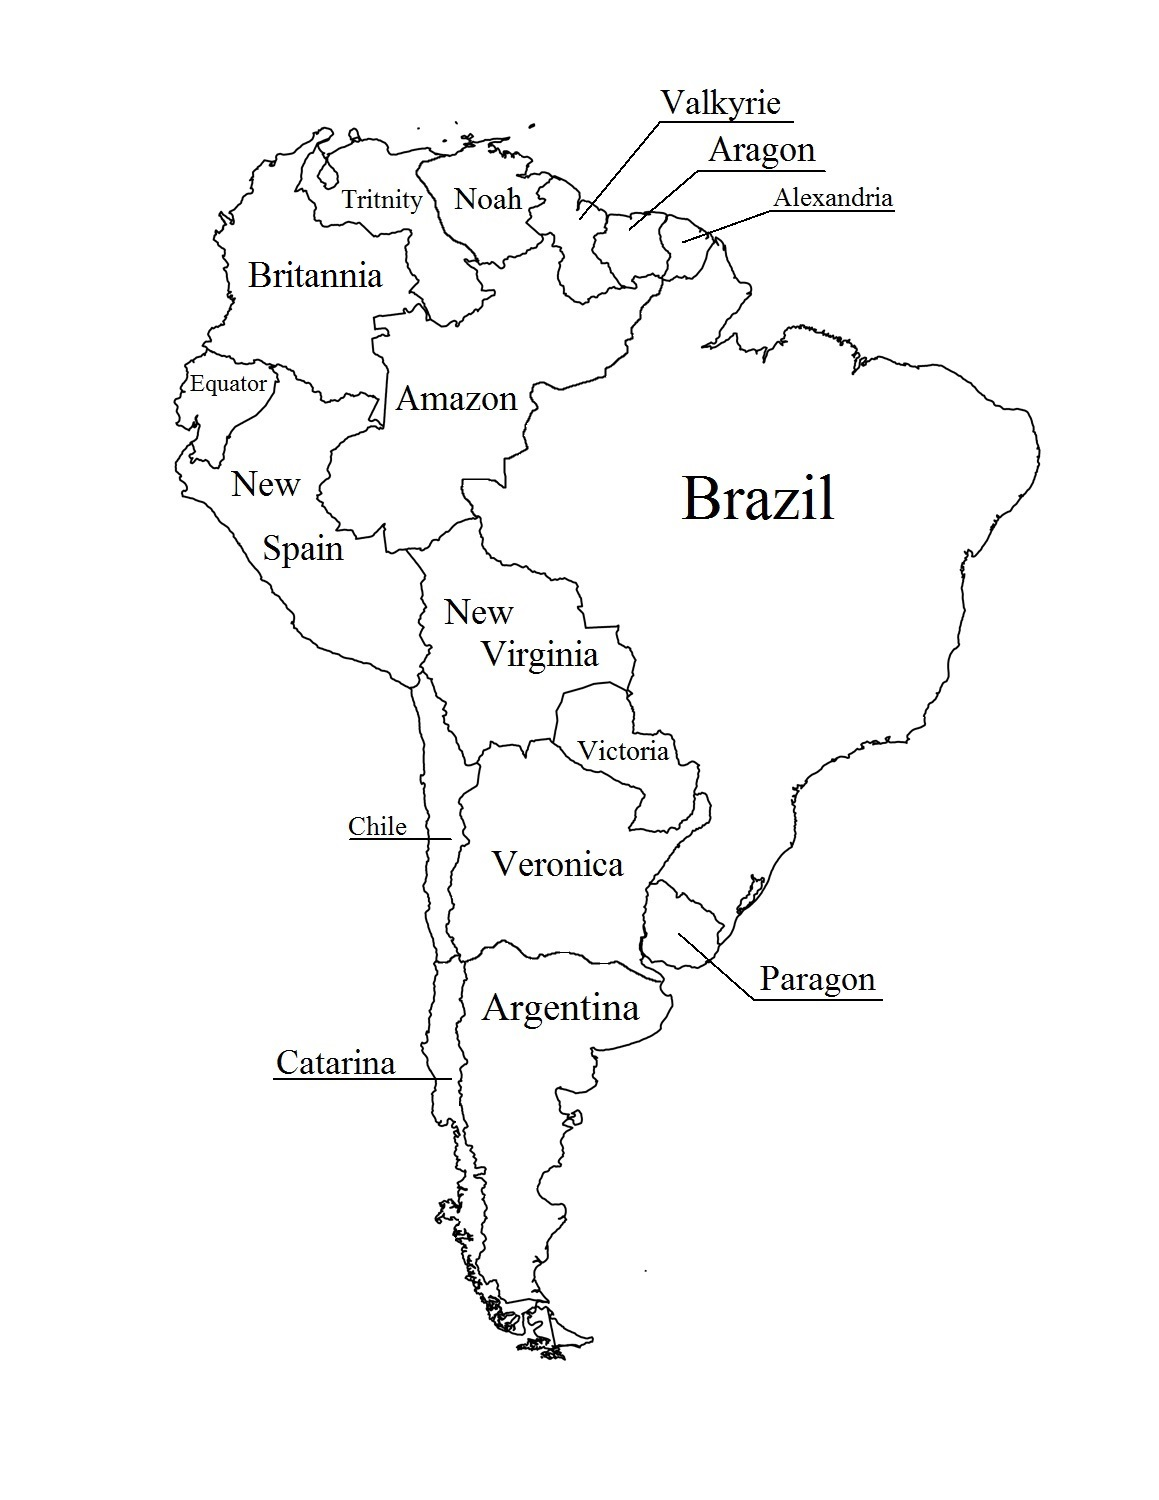 blank map south america printable Outline Of South America Blank Printable Map Of South America blank map south america printable